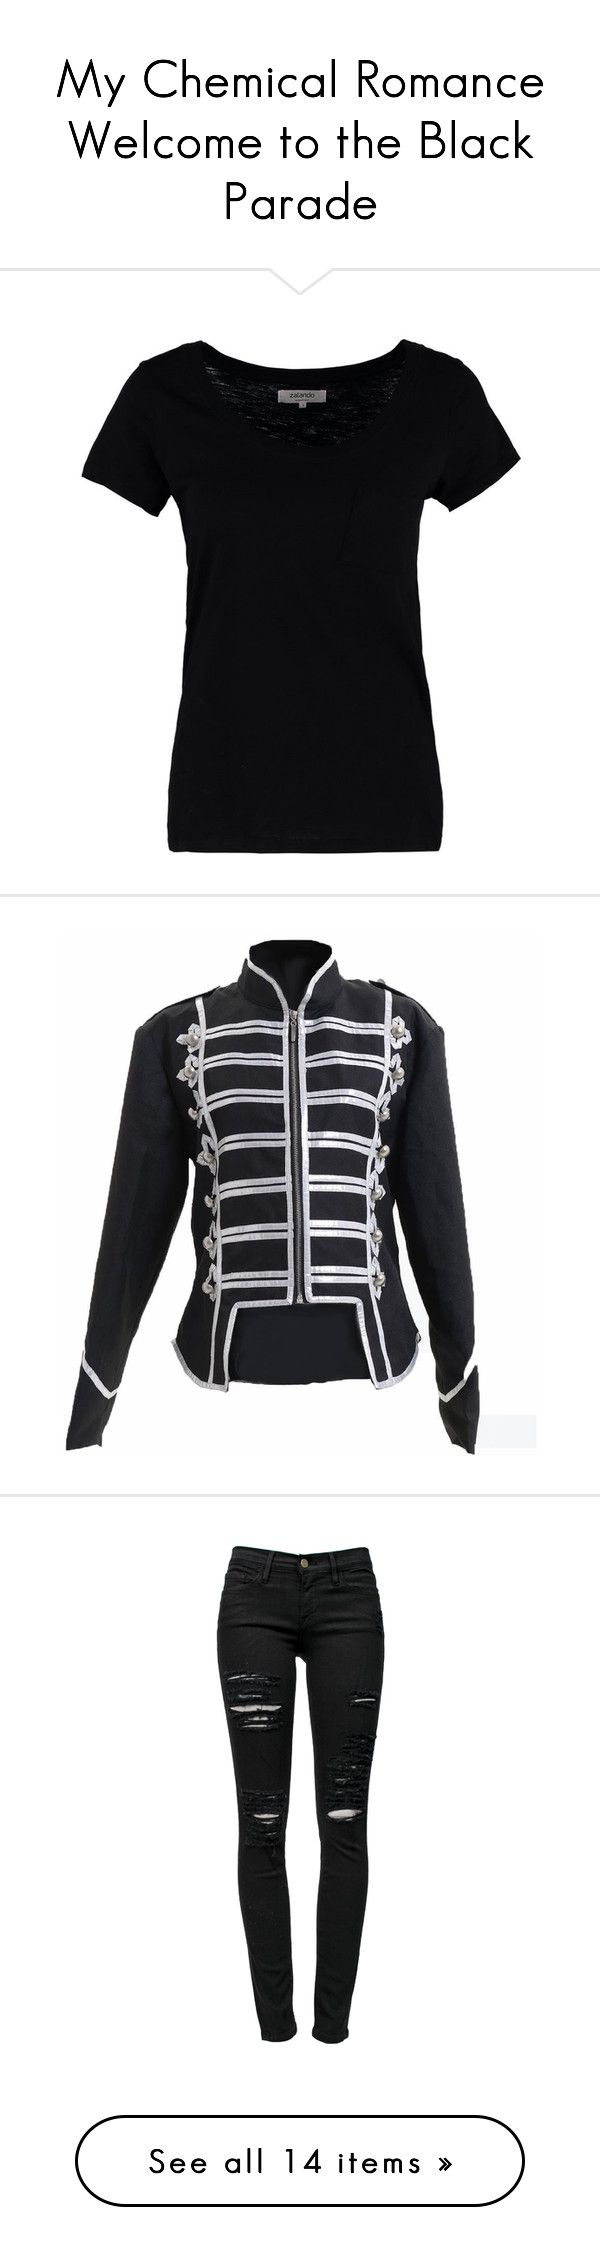 """My Chemical Romance Welcome to the Black Parade"" by cheyenneprice98 ❤ liked on Polyvore featuring tops, t-shirts, black, print tees, crewneck tee, crew neck t shirt, women tops, black t shirt, jackets and lullabies"